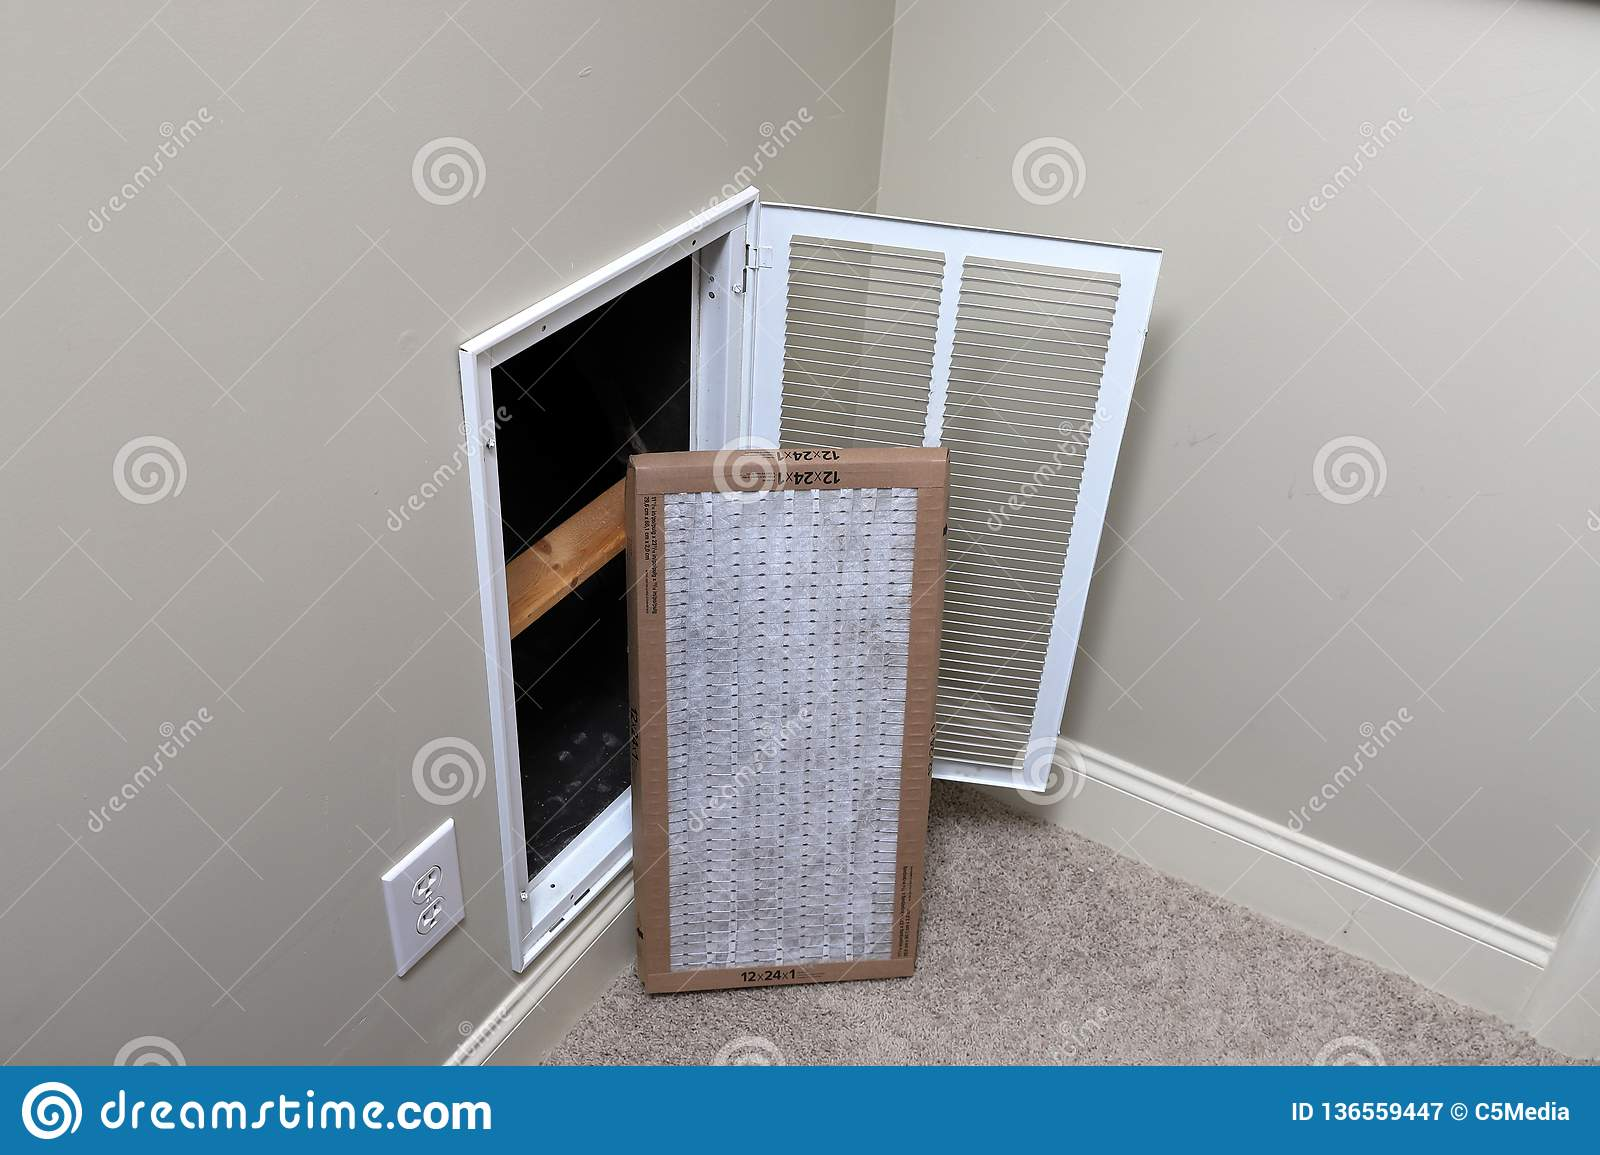 Dirty And Clean Air Conditioner Filter Stock Photo